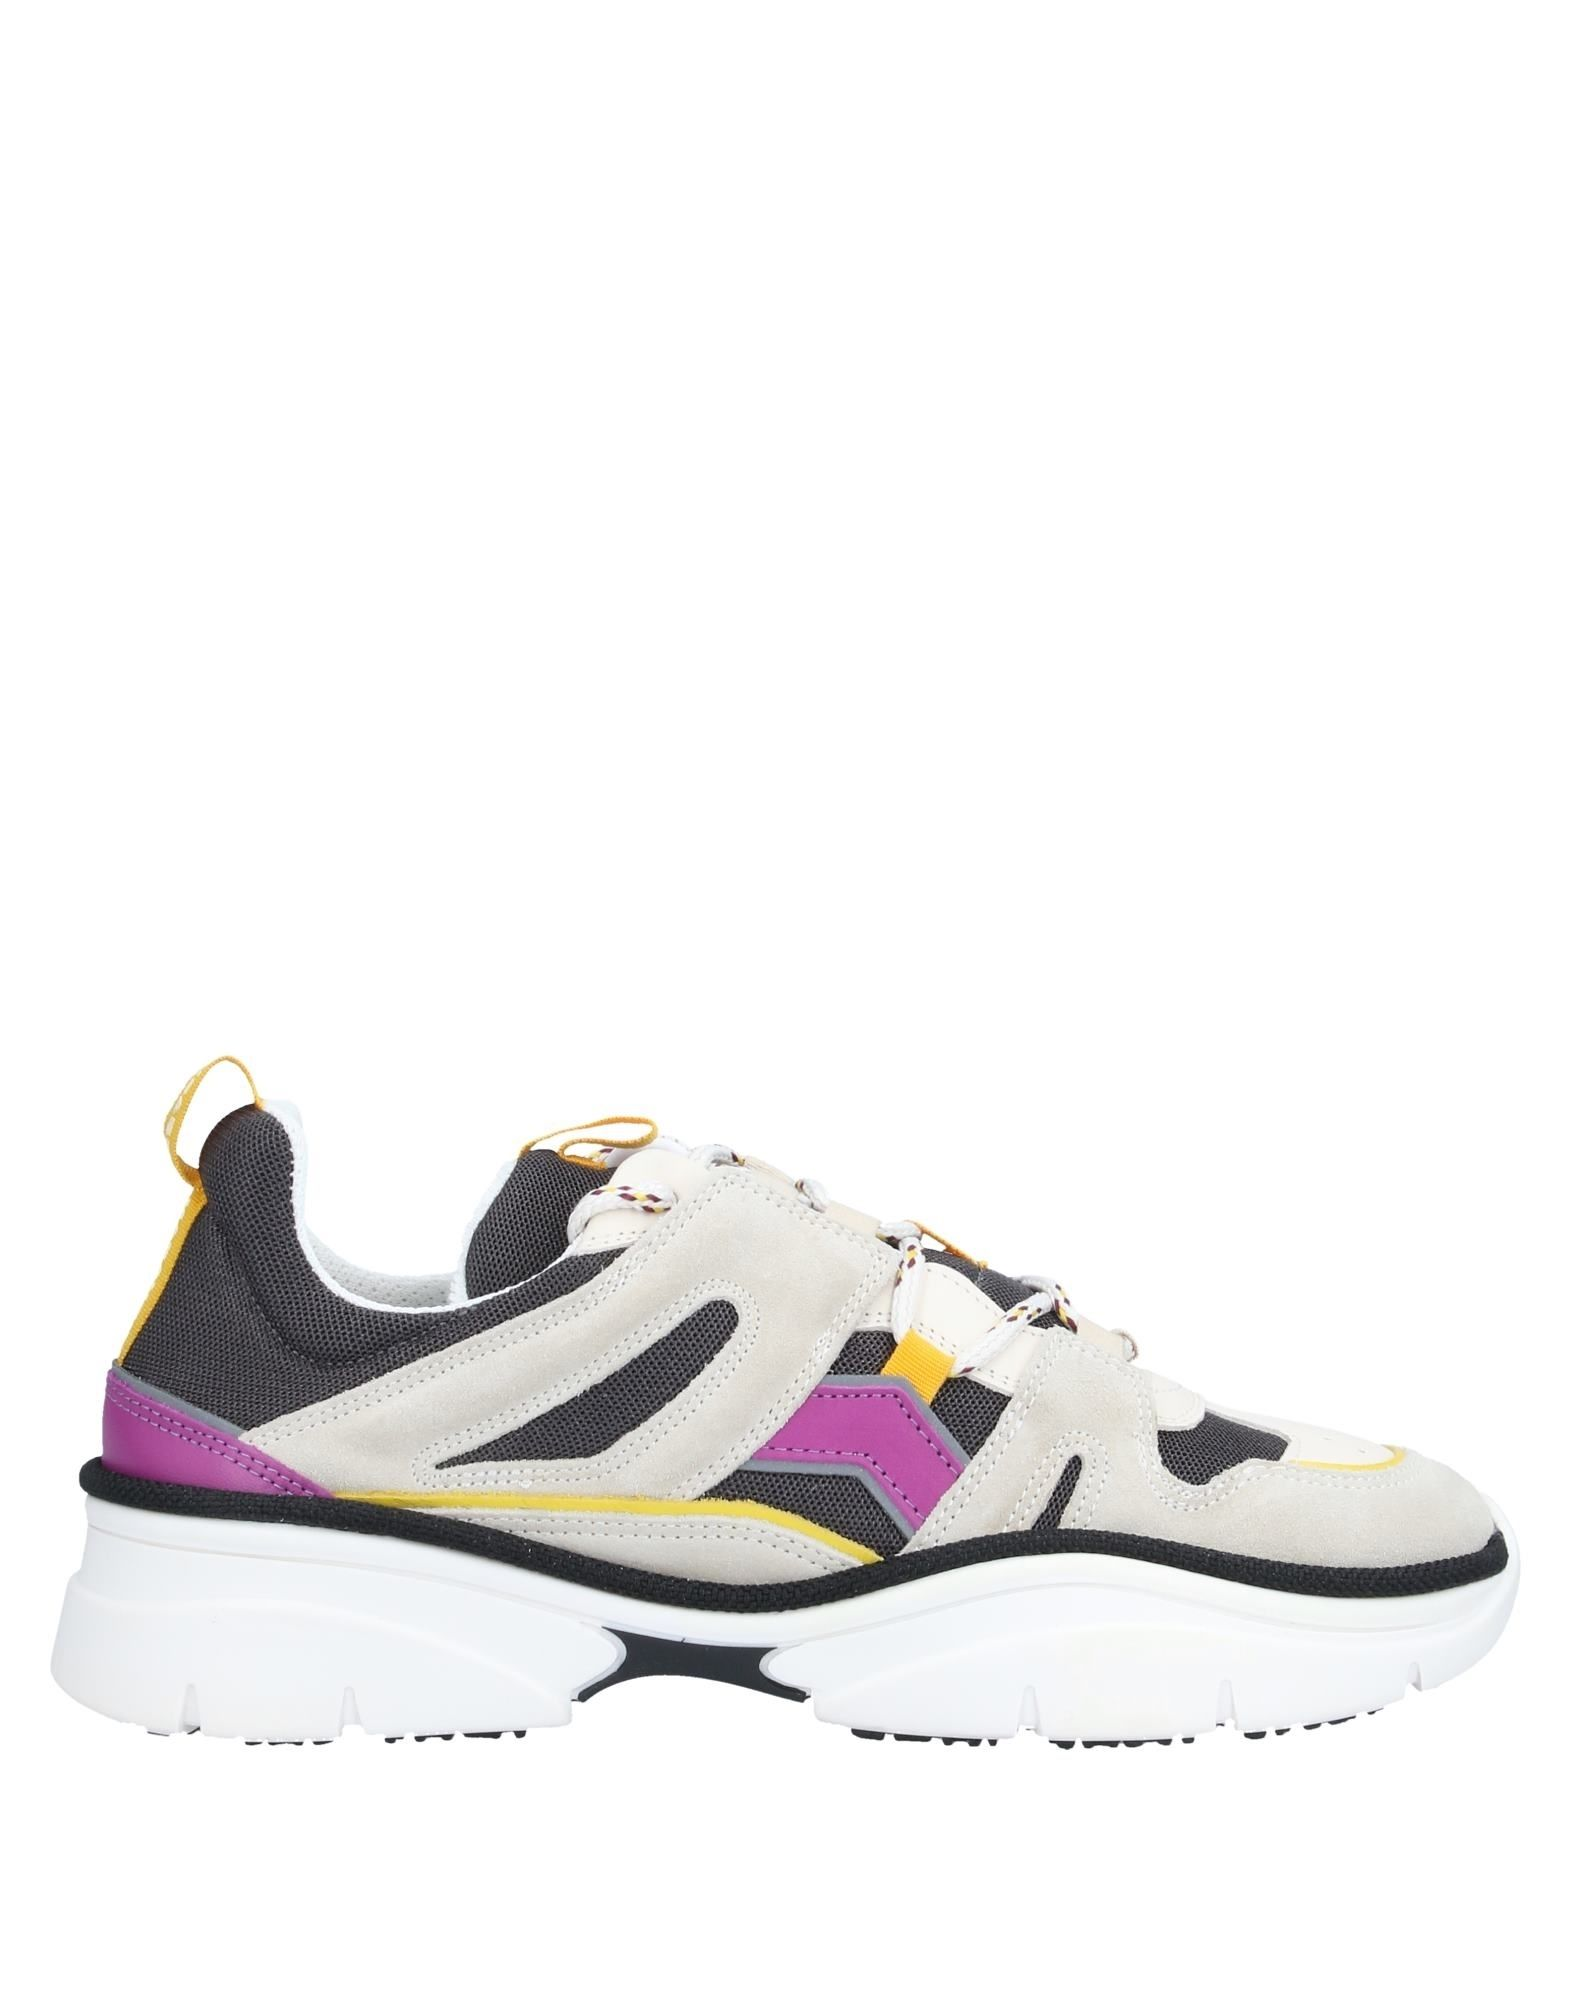 ISABEL MARANT Sneakers. techno fabric, leather, suede effect, logo, multicolor pattern, laces, round toeline, wedge heel, leather lining, rubber cleated sole, contains non-textile parts of animal origin, small sized. 100% Calfskin, Textile fibers